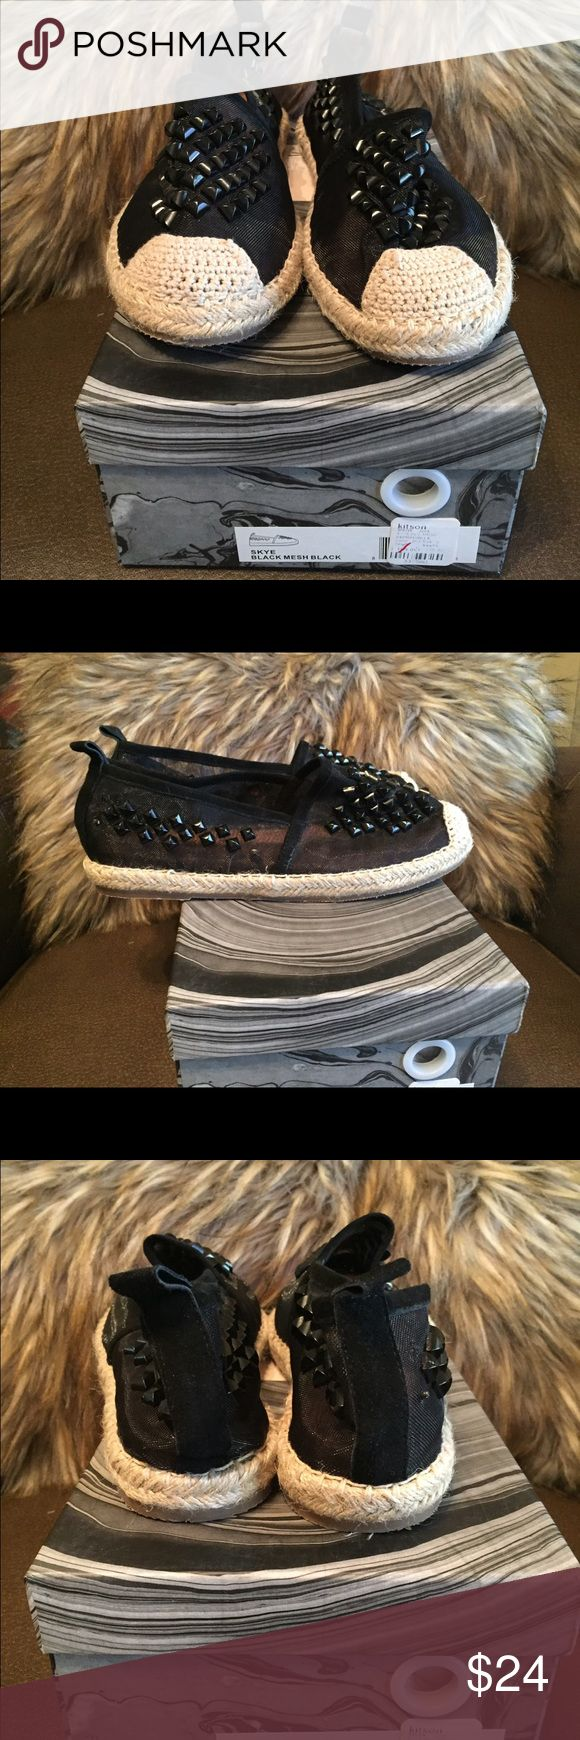 Jeffrey Campbell espadrille flats! Adorable black espadrilles with gorgeous detail. Worn once. (Two little spikes missing but you can't even tell!) Jeffrey Campbell Shoes Espadrilles